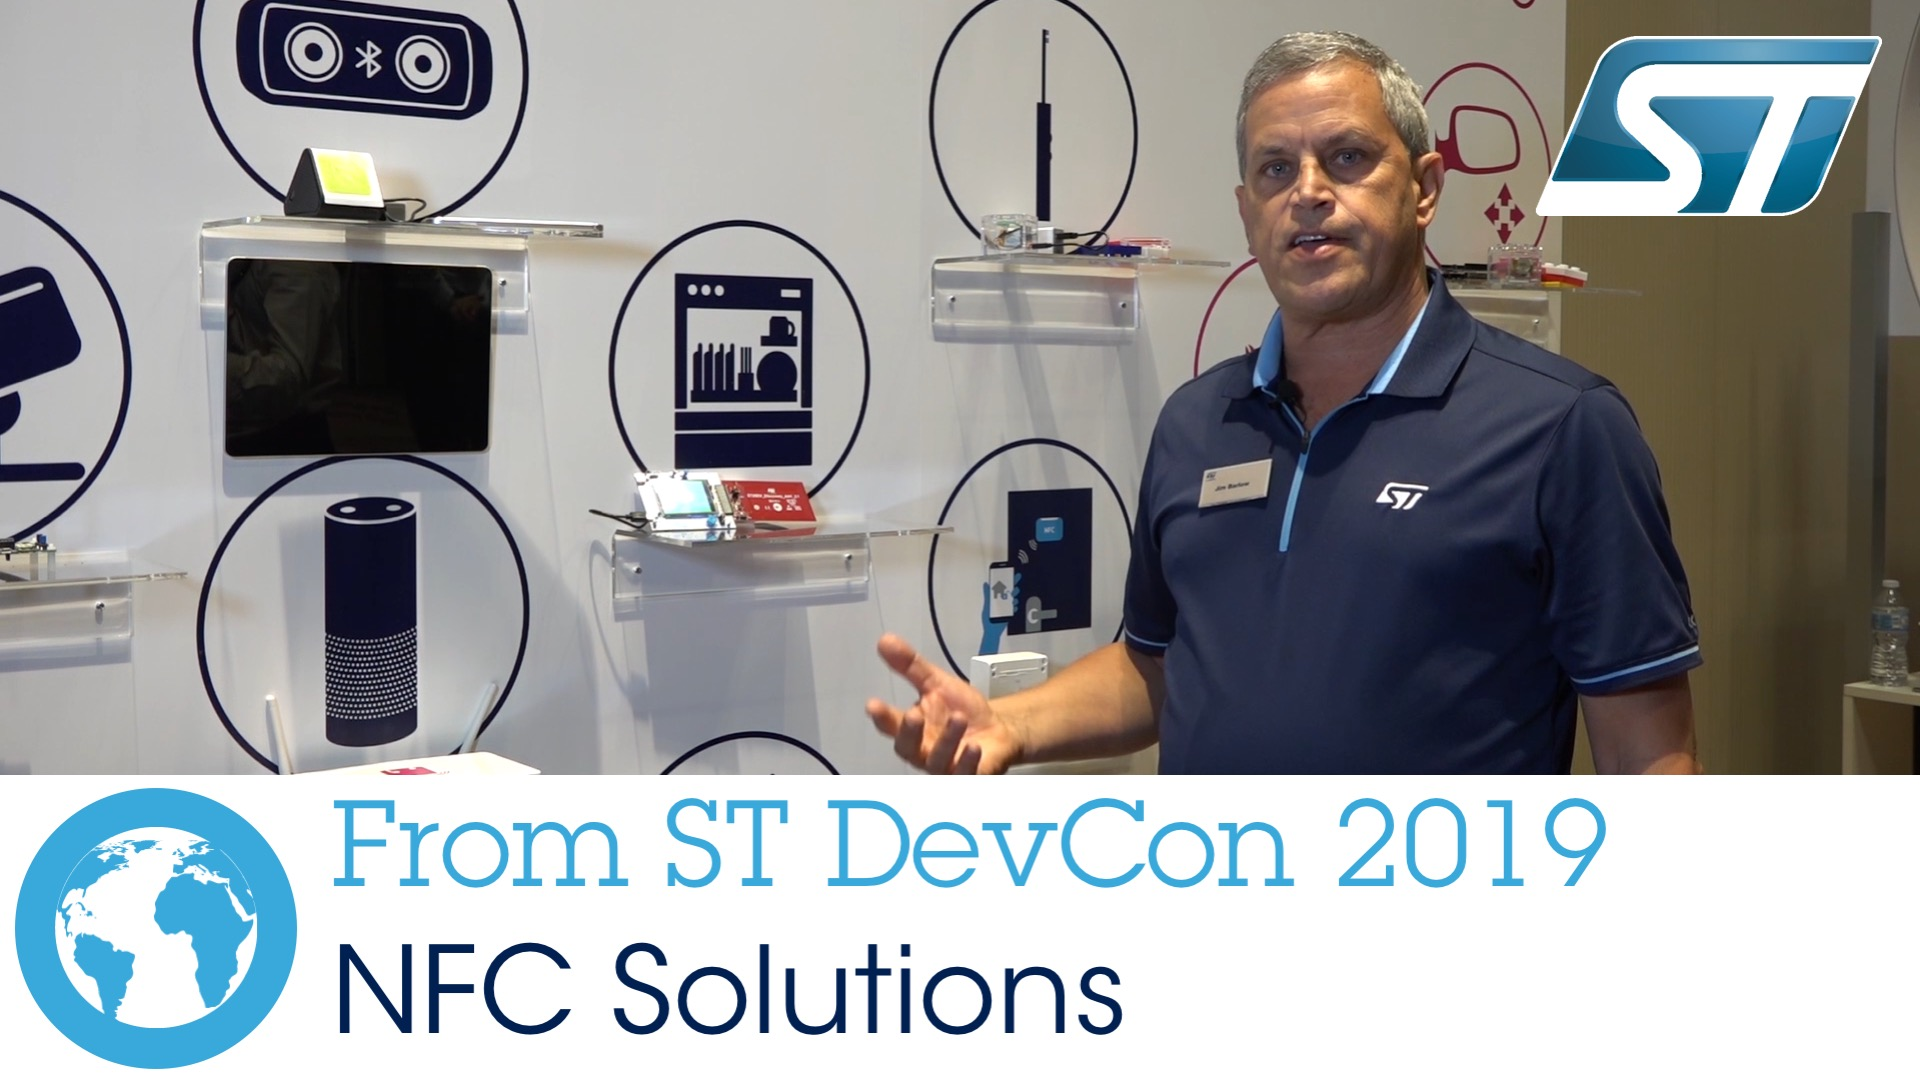 Developers Conference 2019 : NFC solutions